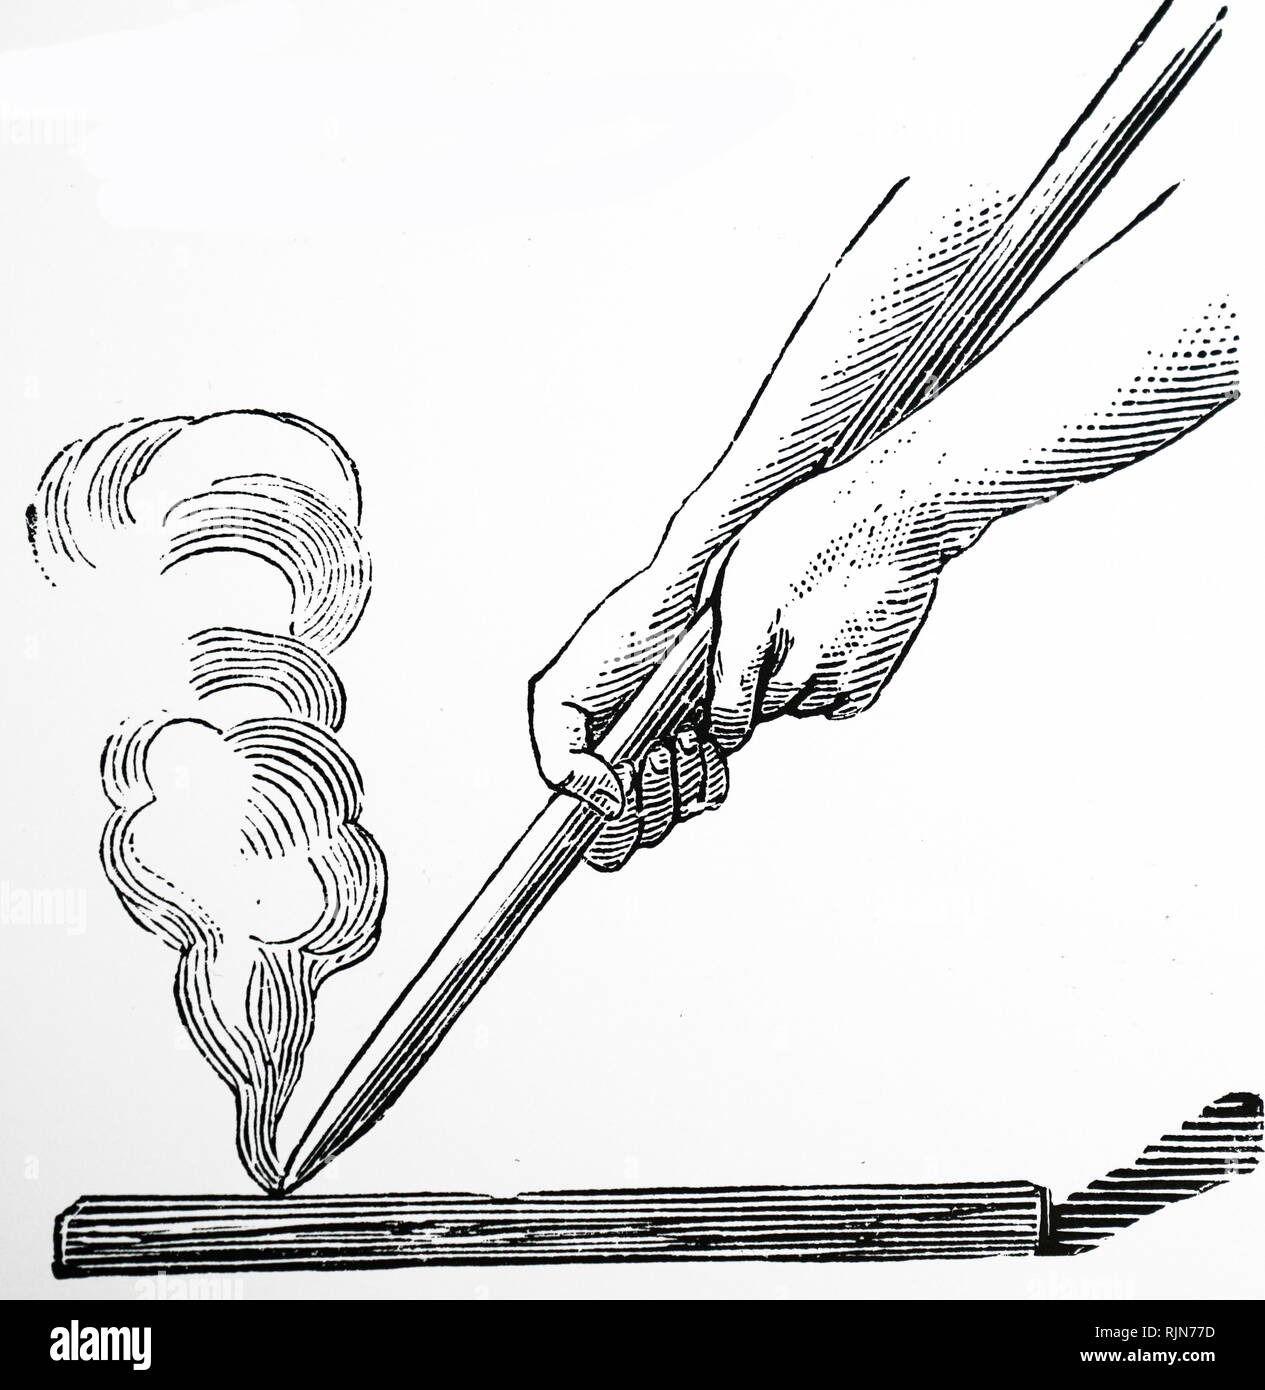 Illustration showing stick of hardwood being rubbed on a core of softwood - the blister making method-to produce fire - Stock Image